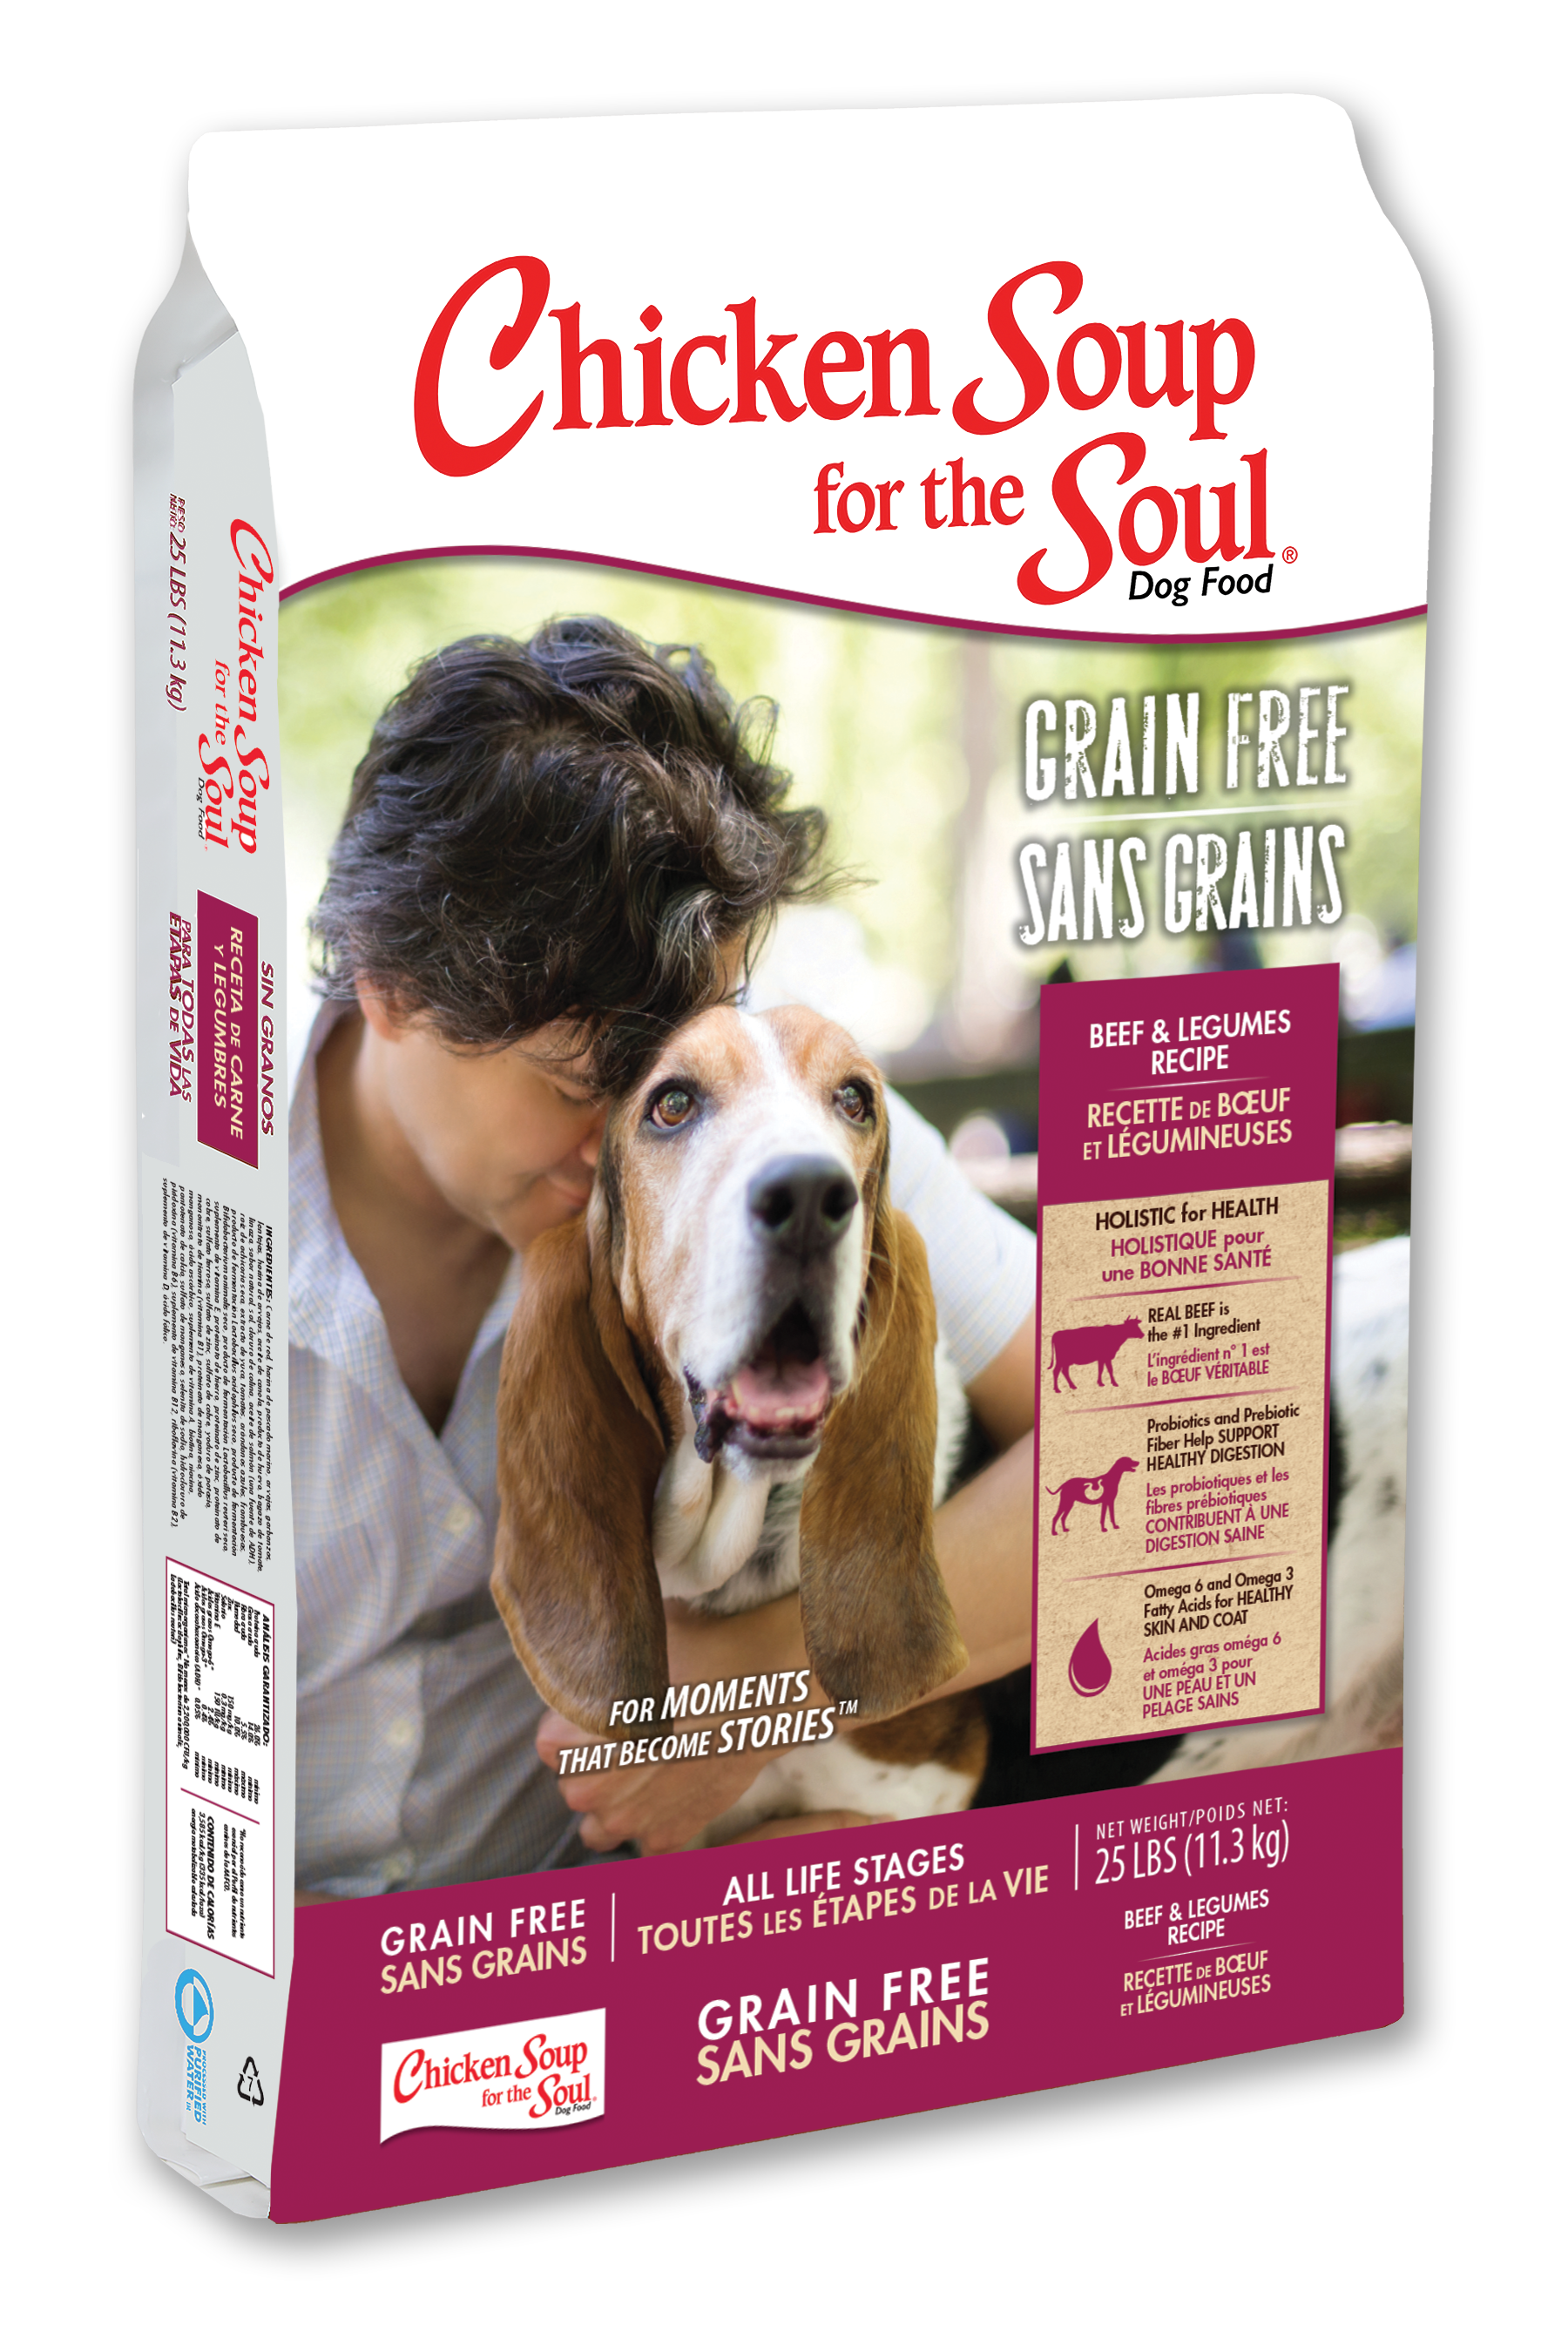 Grain Free Dog Food Beef Amp Legumes Recipe Chicken Soup